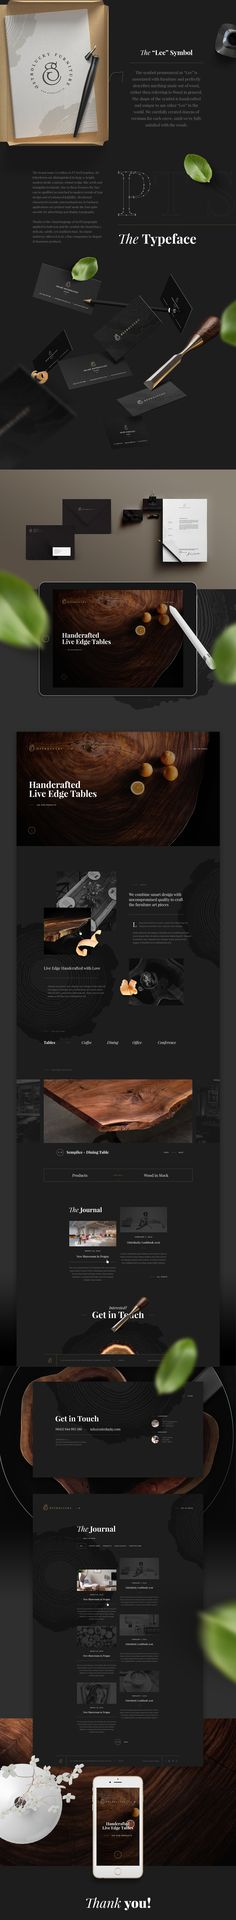 Brand design & Web design for newly established brand of luxury live-edge tables - Ostrolucky.